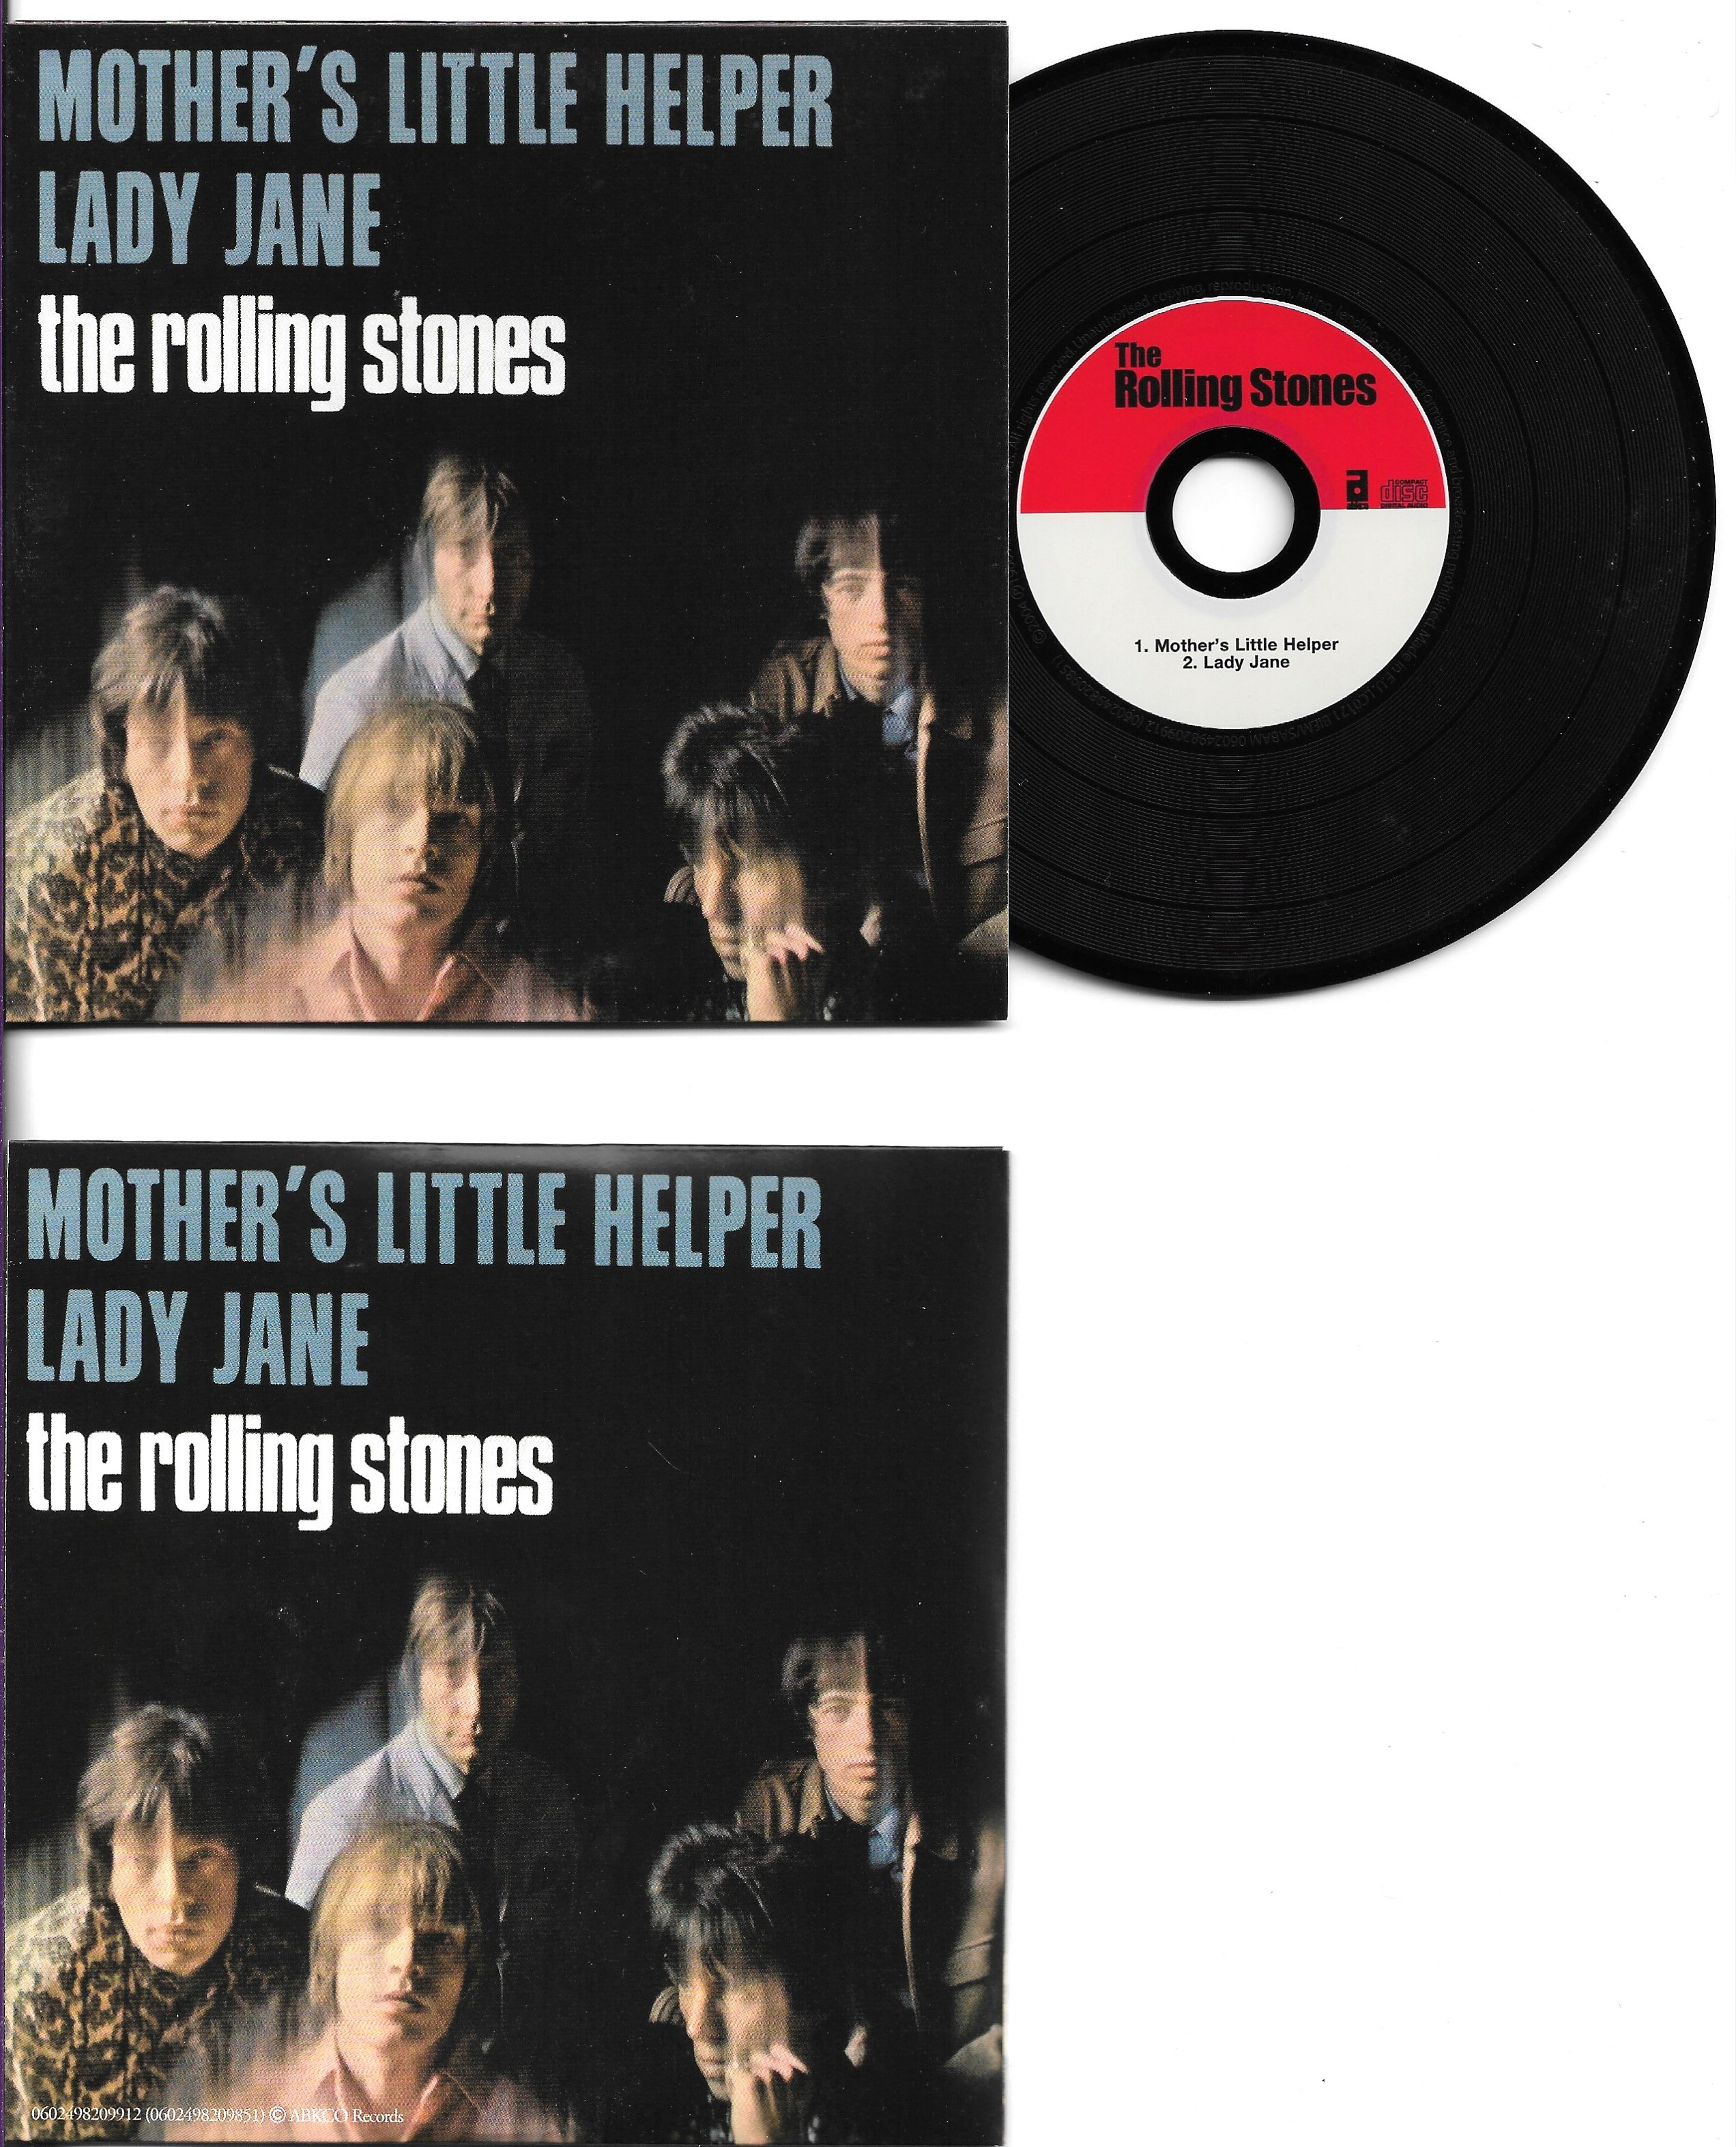 THE ROLLING STONES - Mother's little helper 2-track CARD SLEEVE - CD single